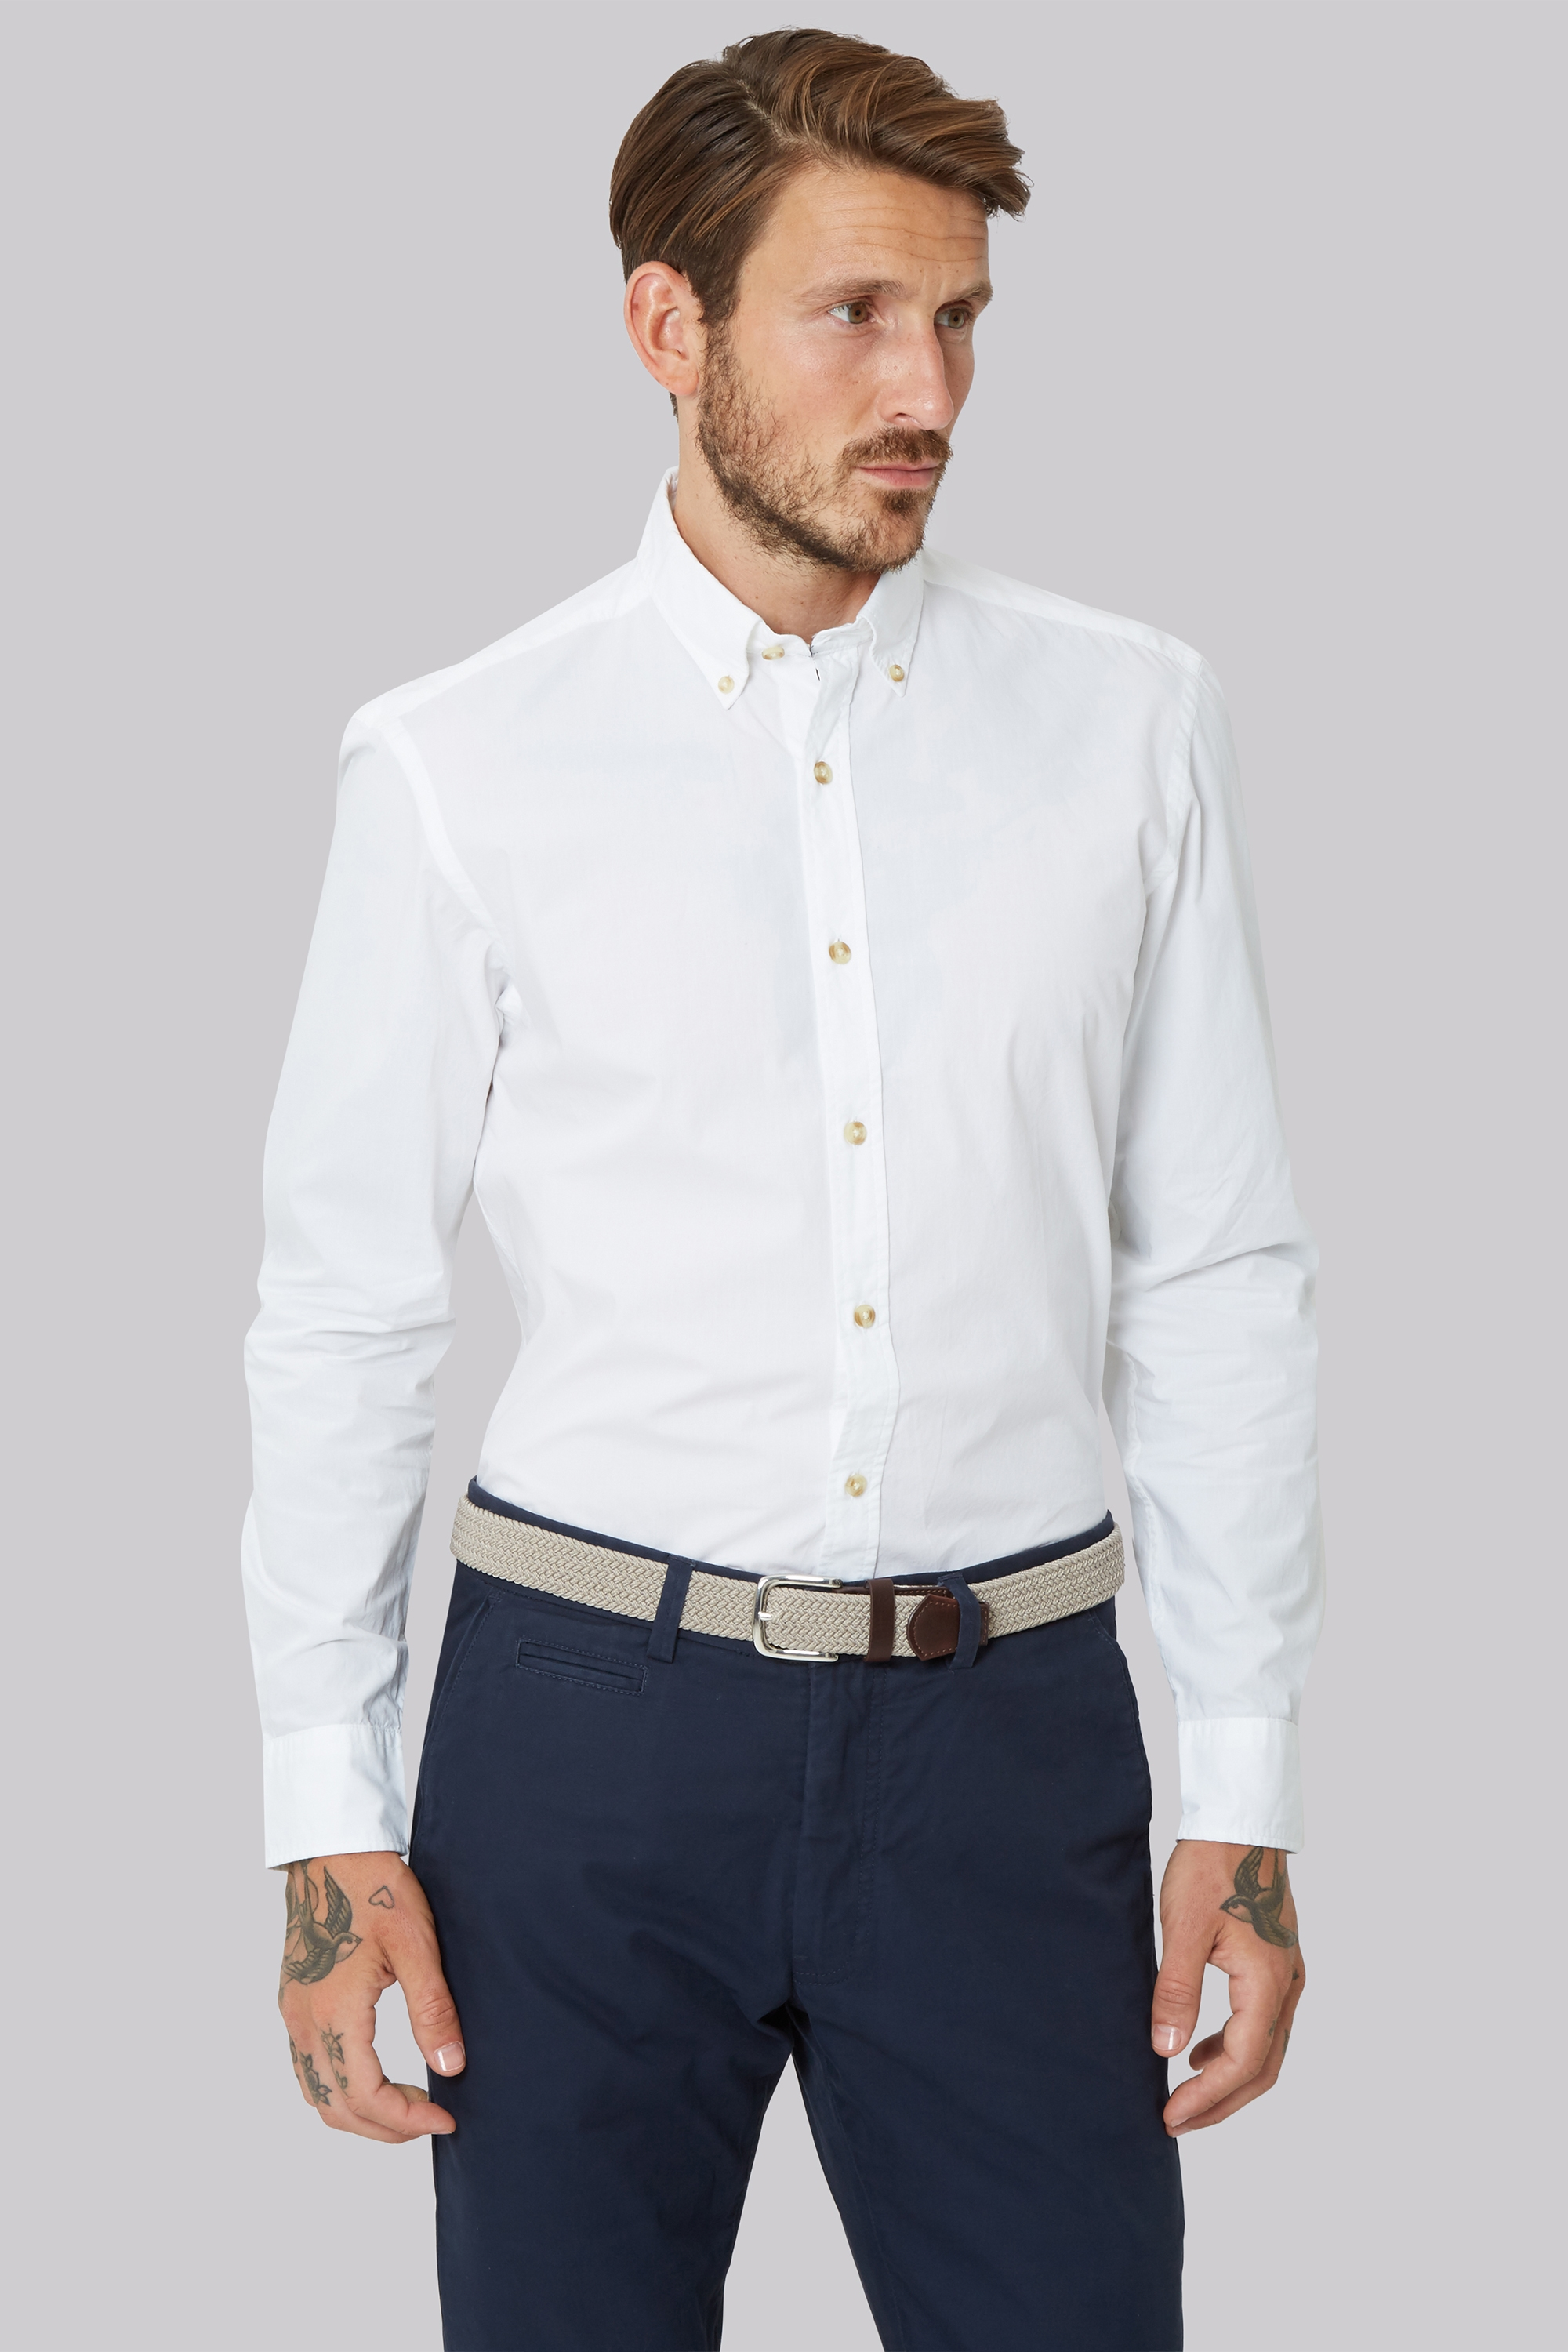 moss 1851 slim fit white single cuff button down collar